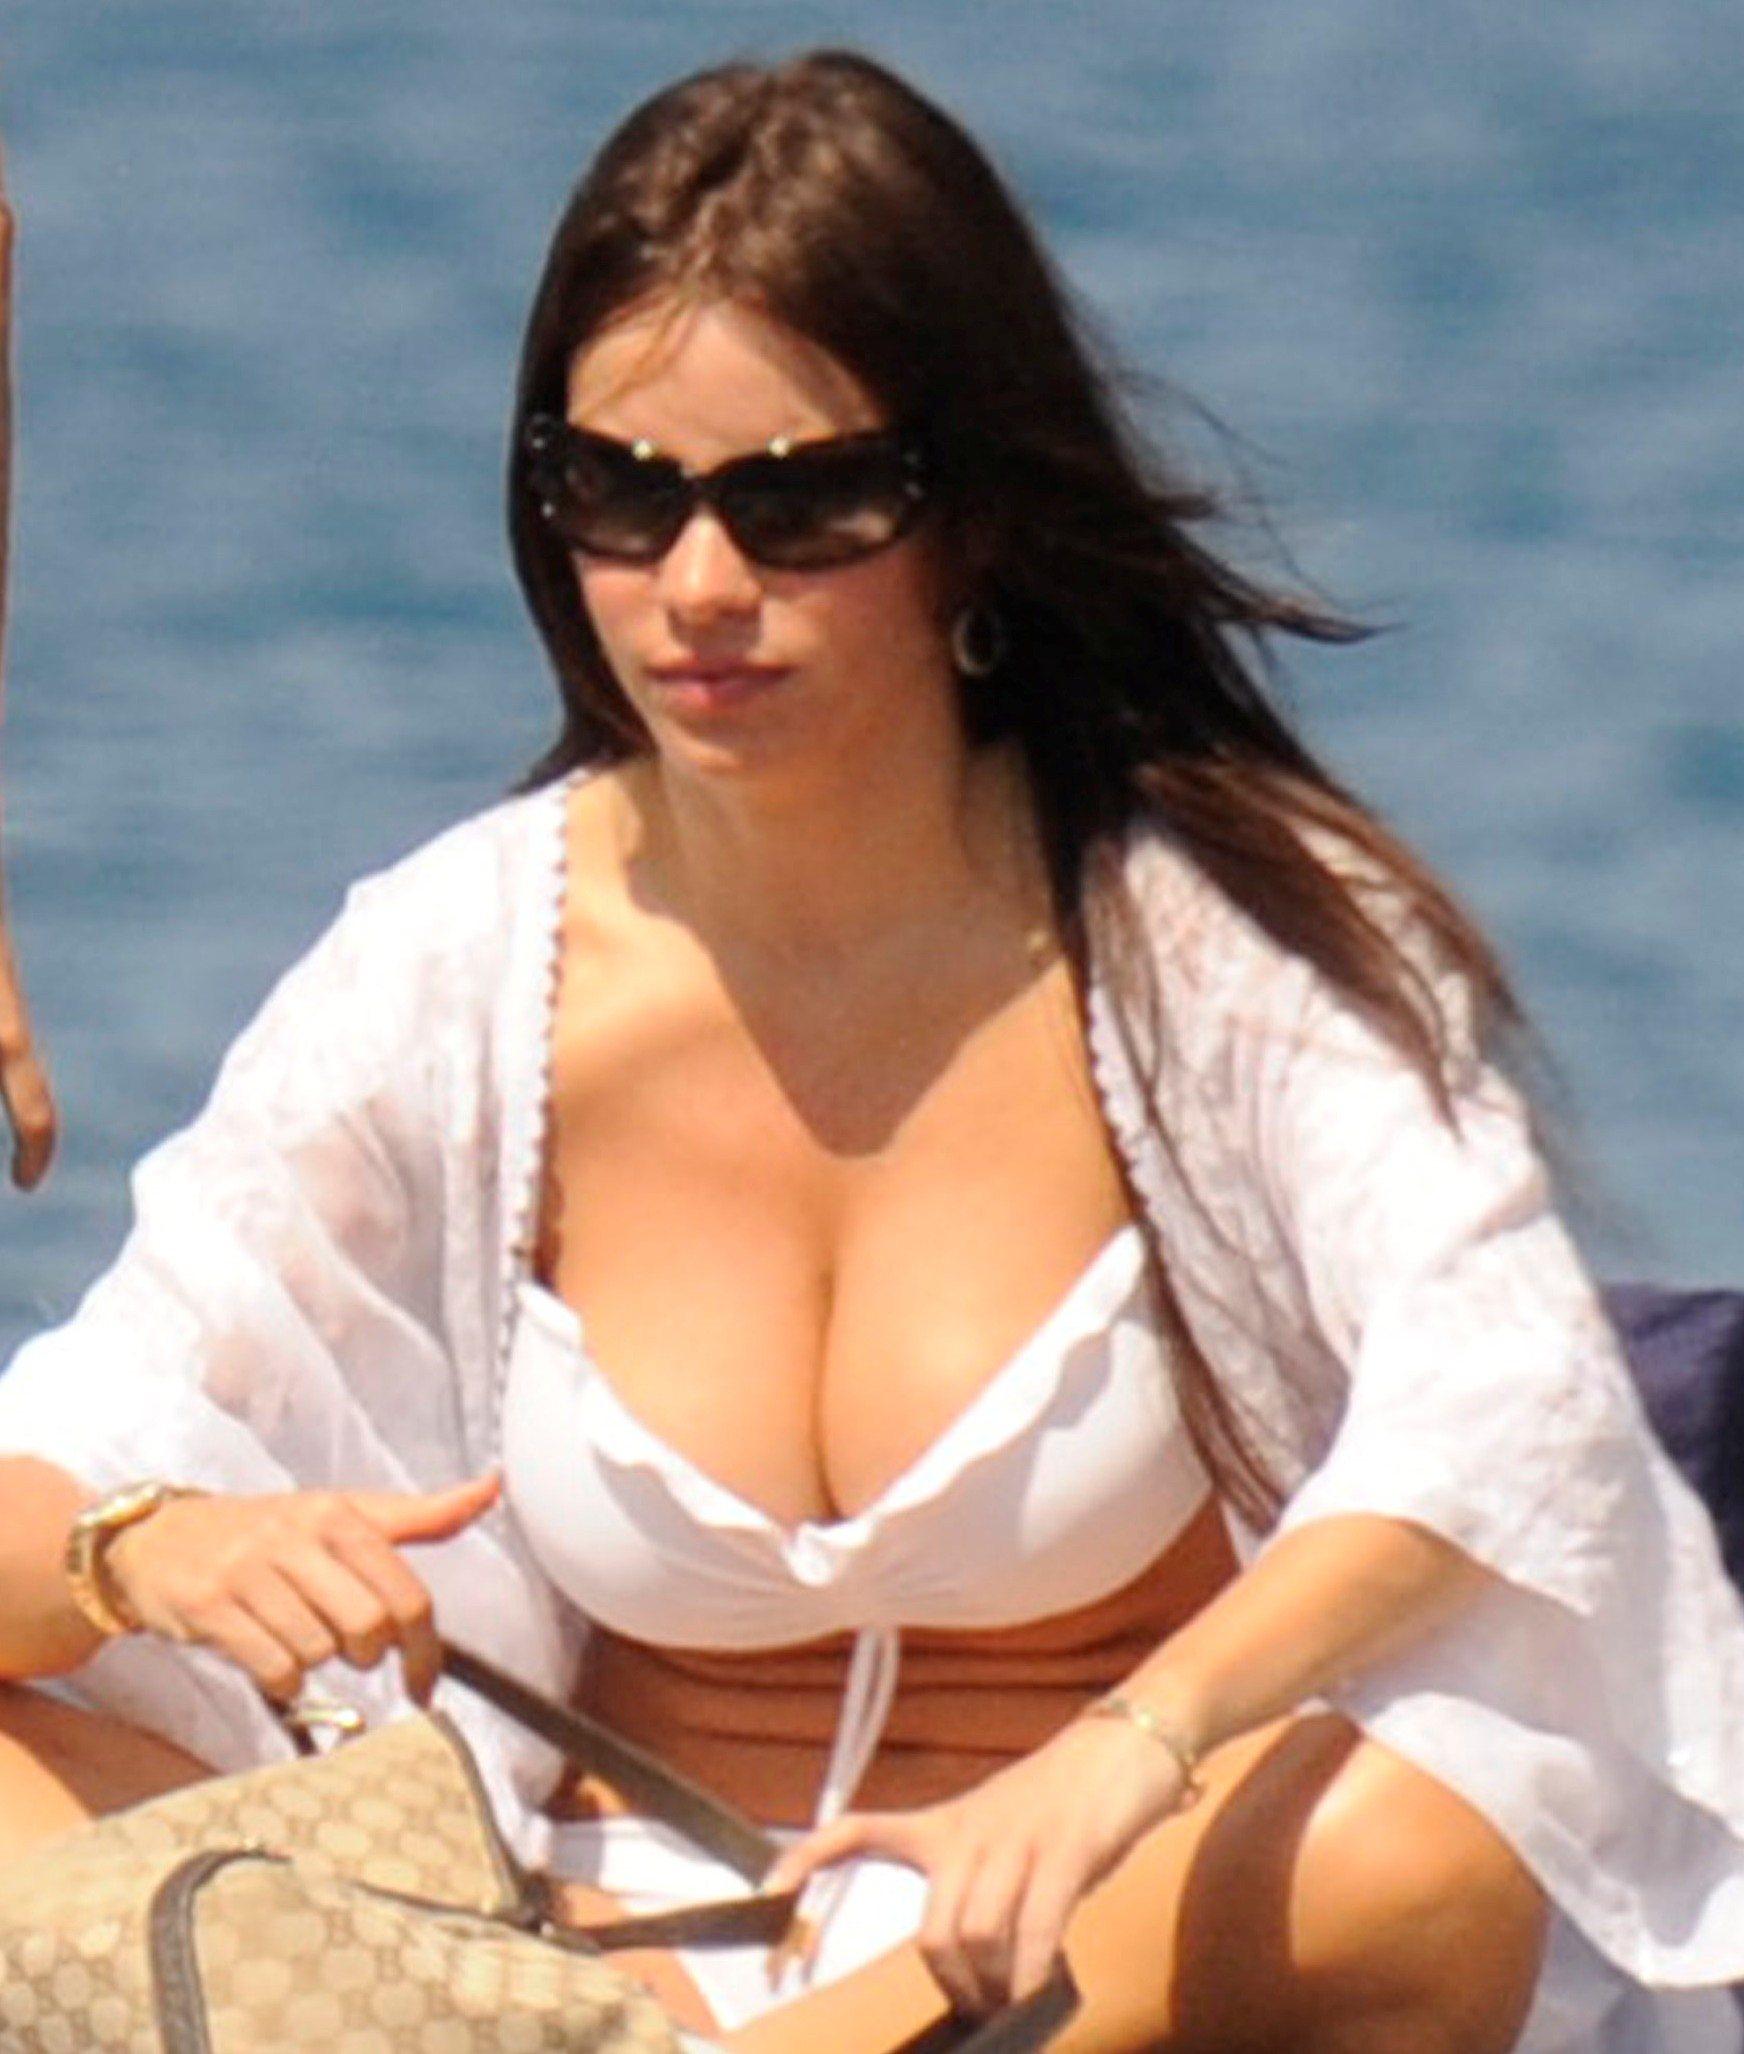 sofia vergara big breasts swimsuit Sofia Vergara Bust Out Her White Bikini!